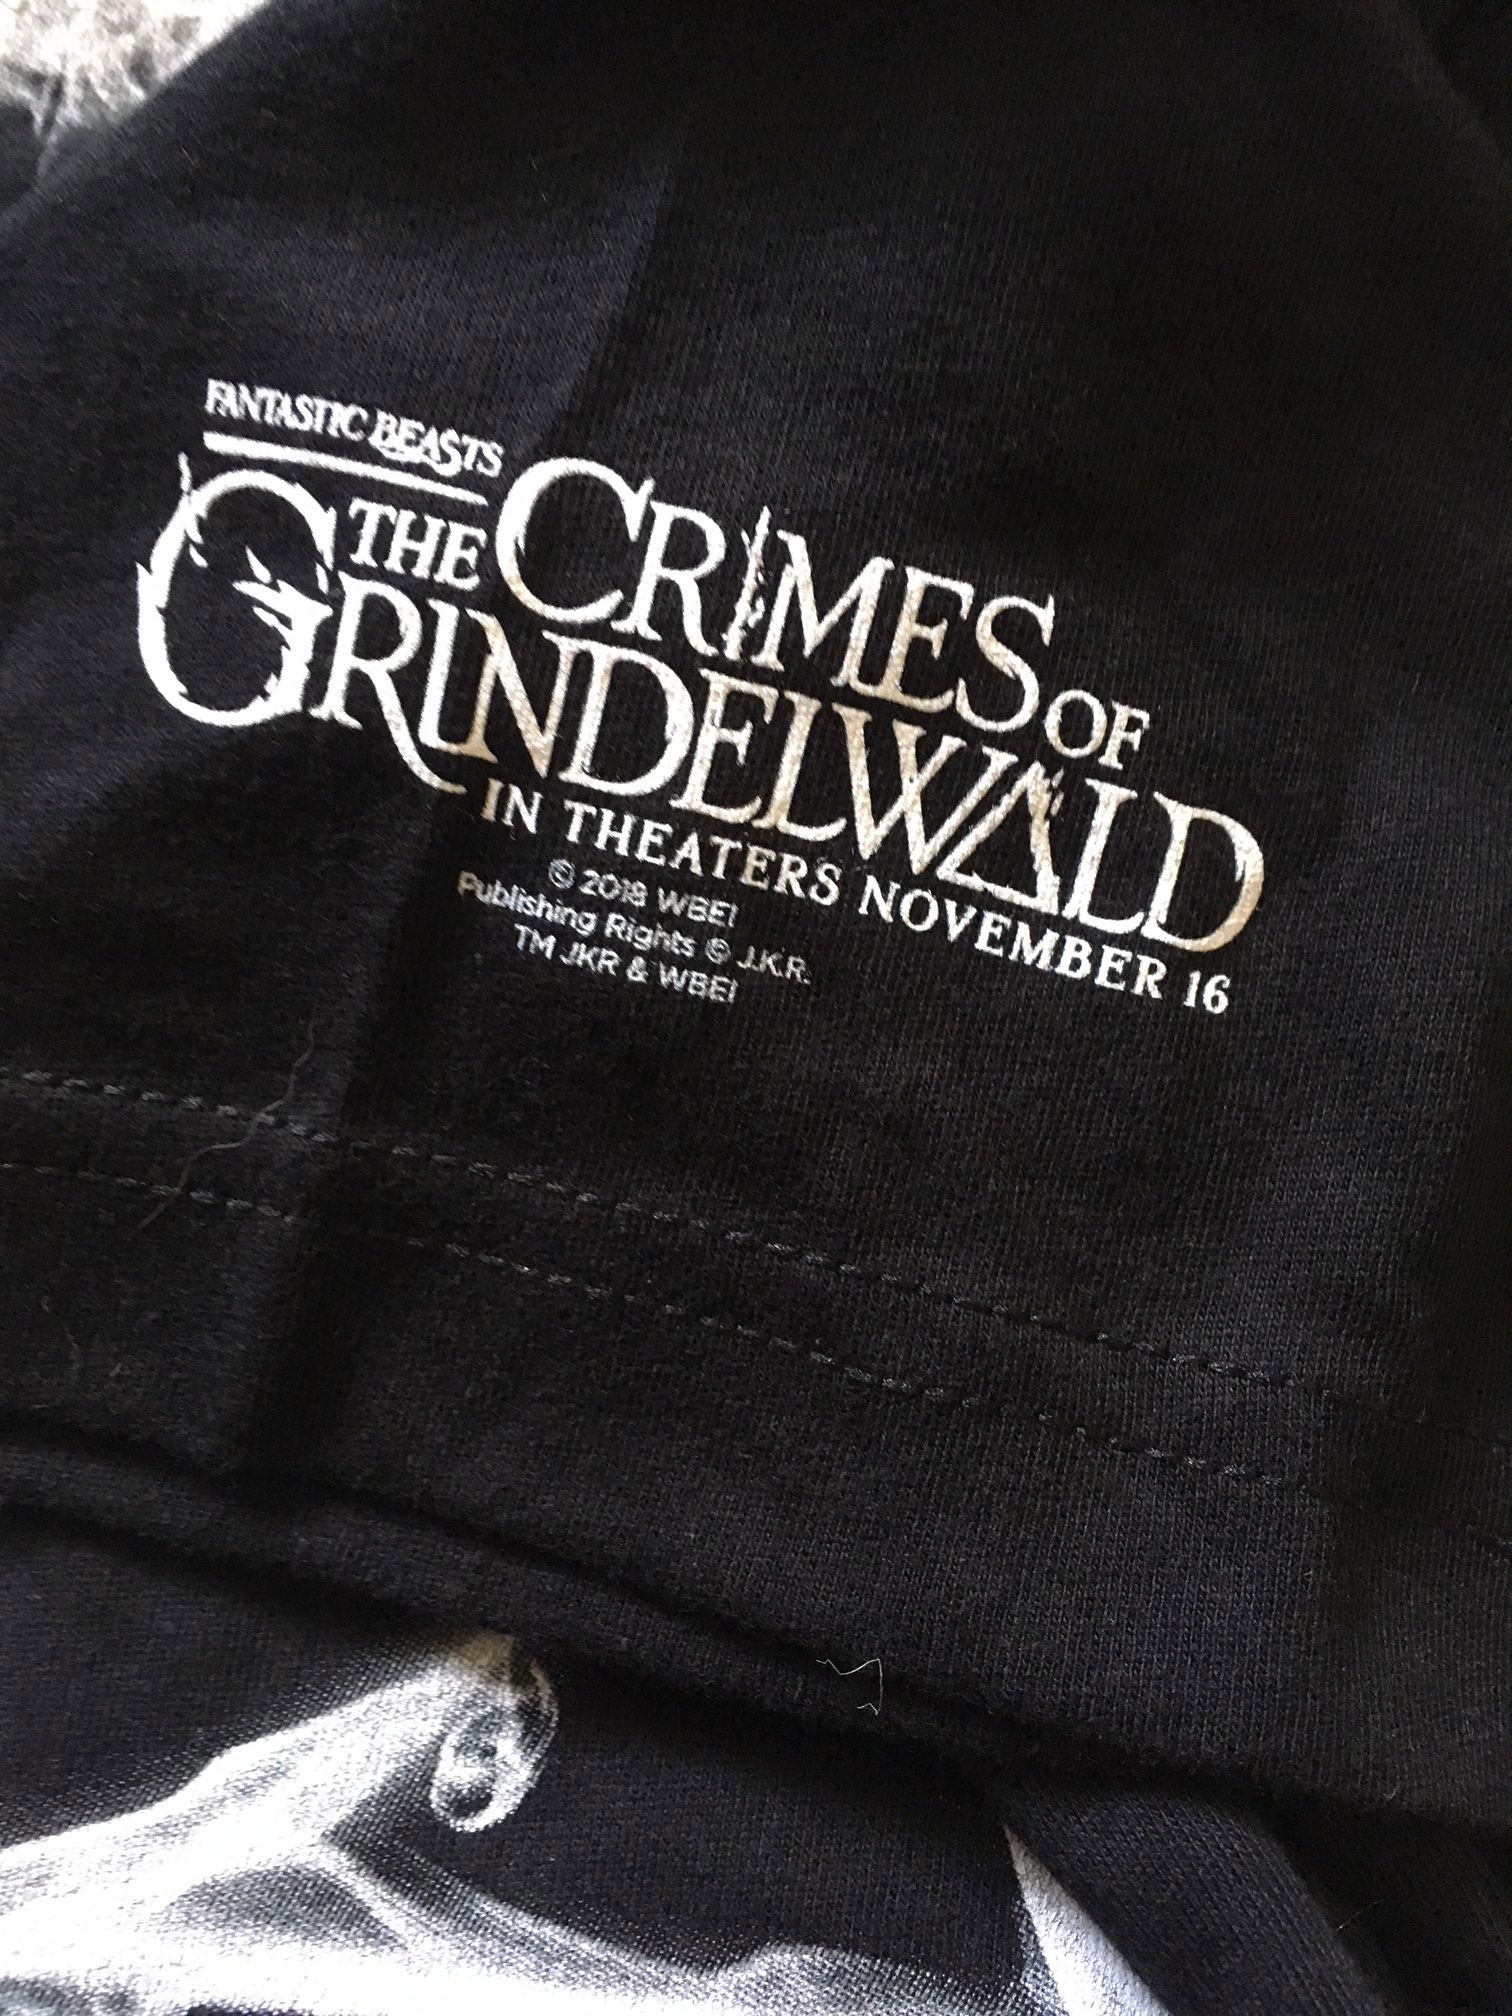 """Fantastic Beasts: The Crimes of Grindelwald"" back side of T-shirt showing film logo"